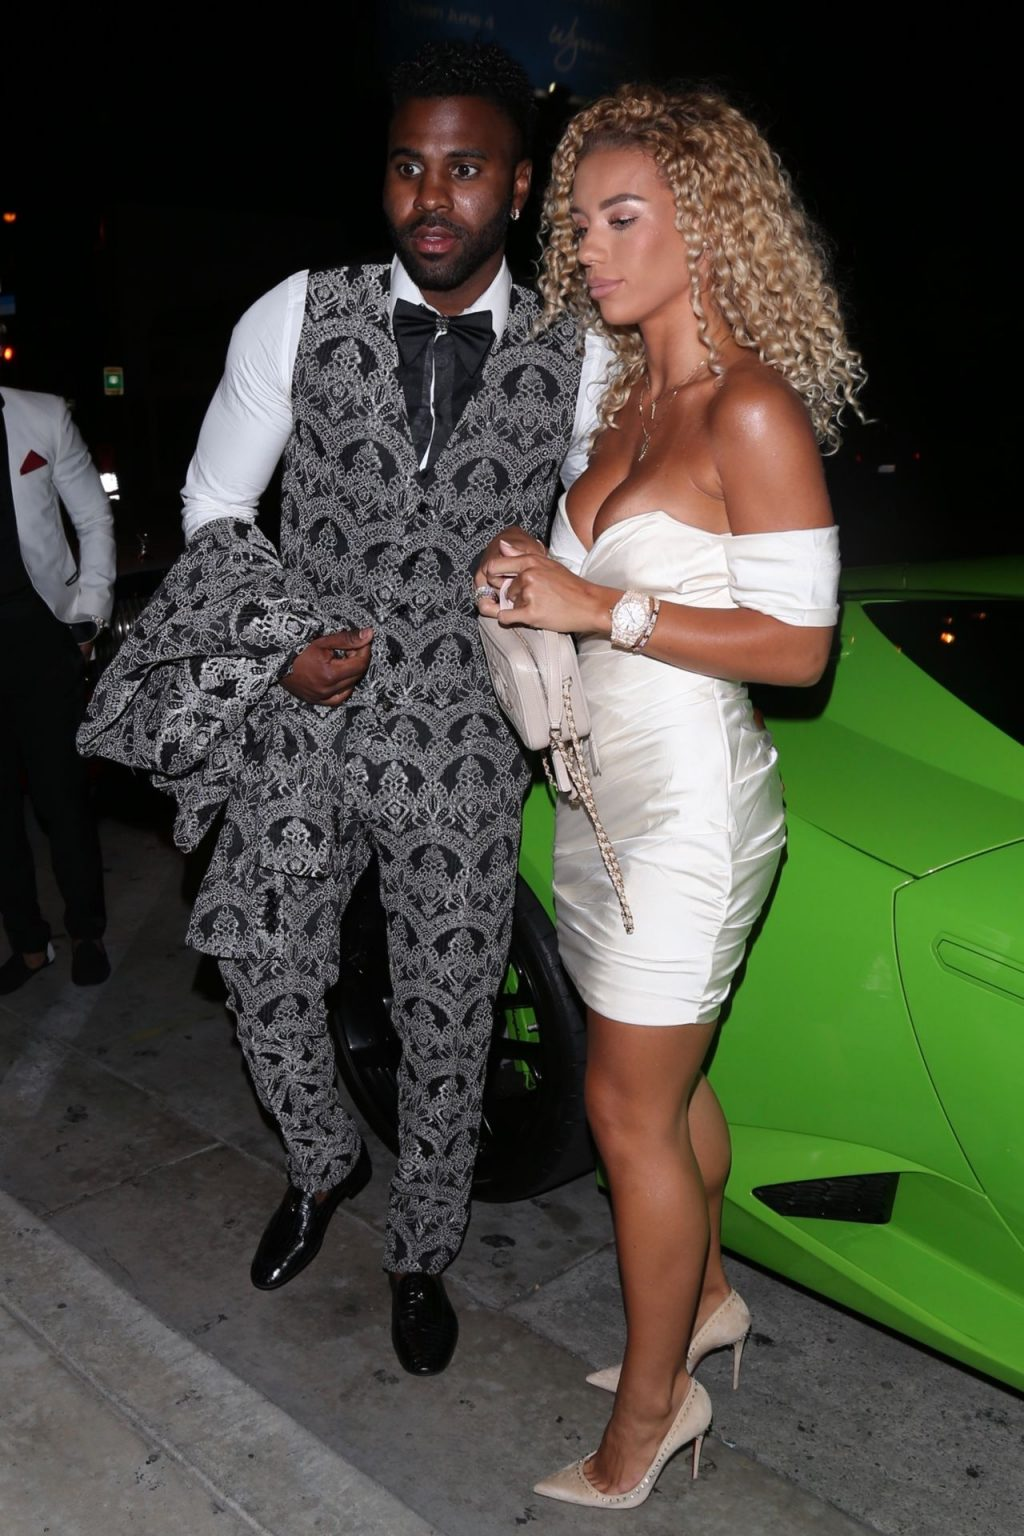 Jena Frumes Steps Out for a Date Night with Her Boyfriend (13 Photos)